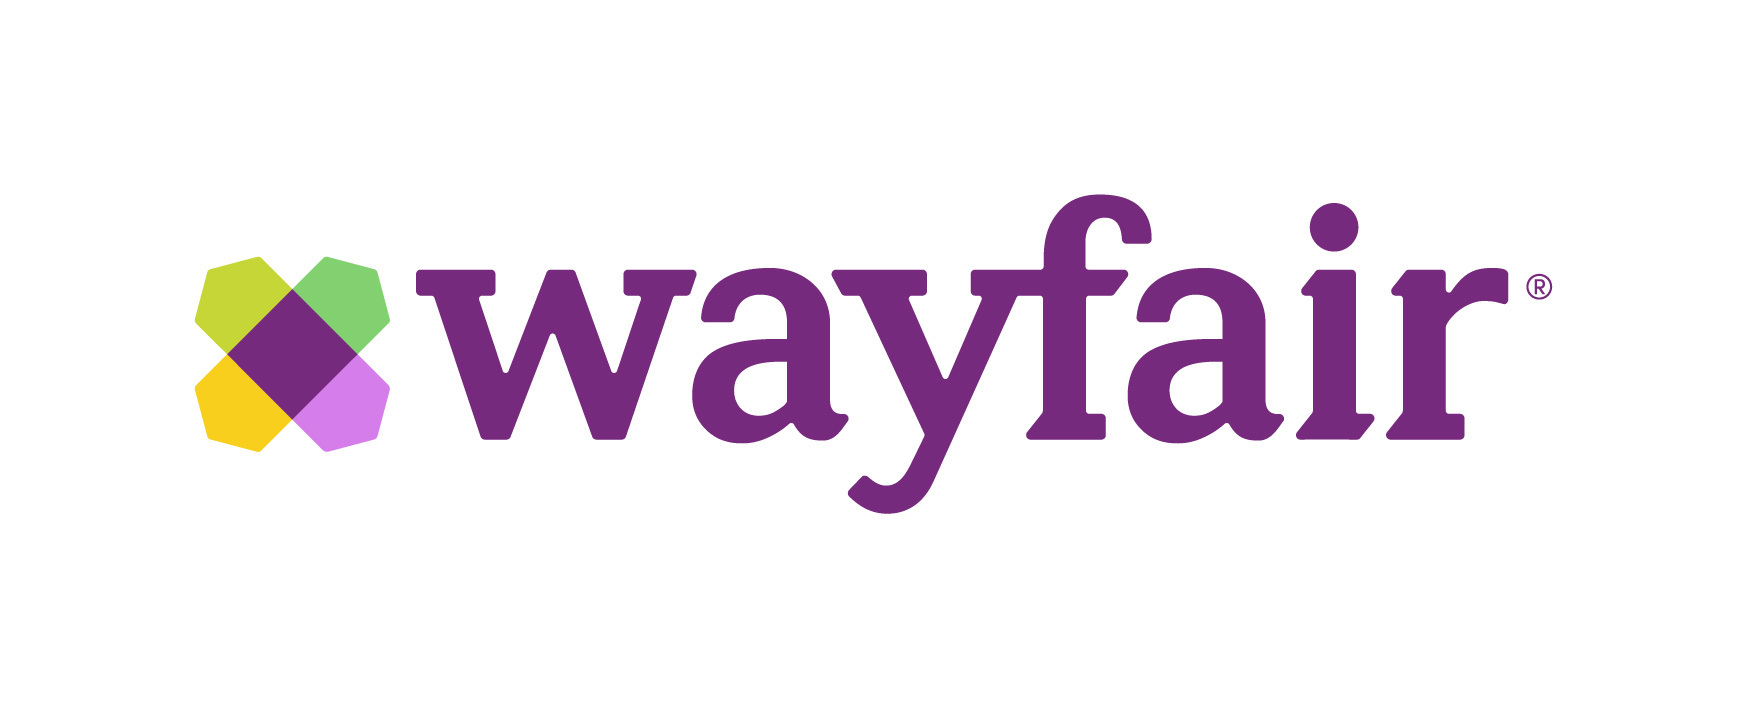 Wayfair To Launch Pop Up Retail Experience For The Holiday Season Business Wire